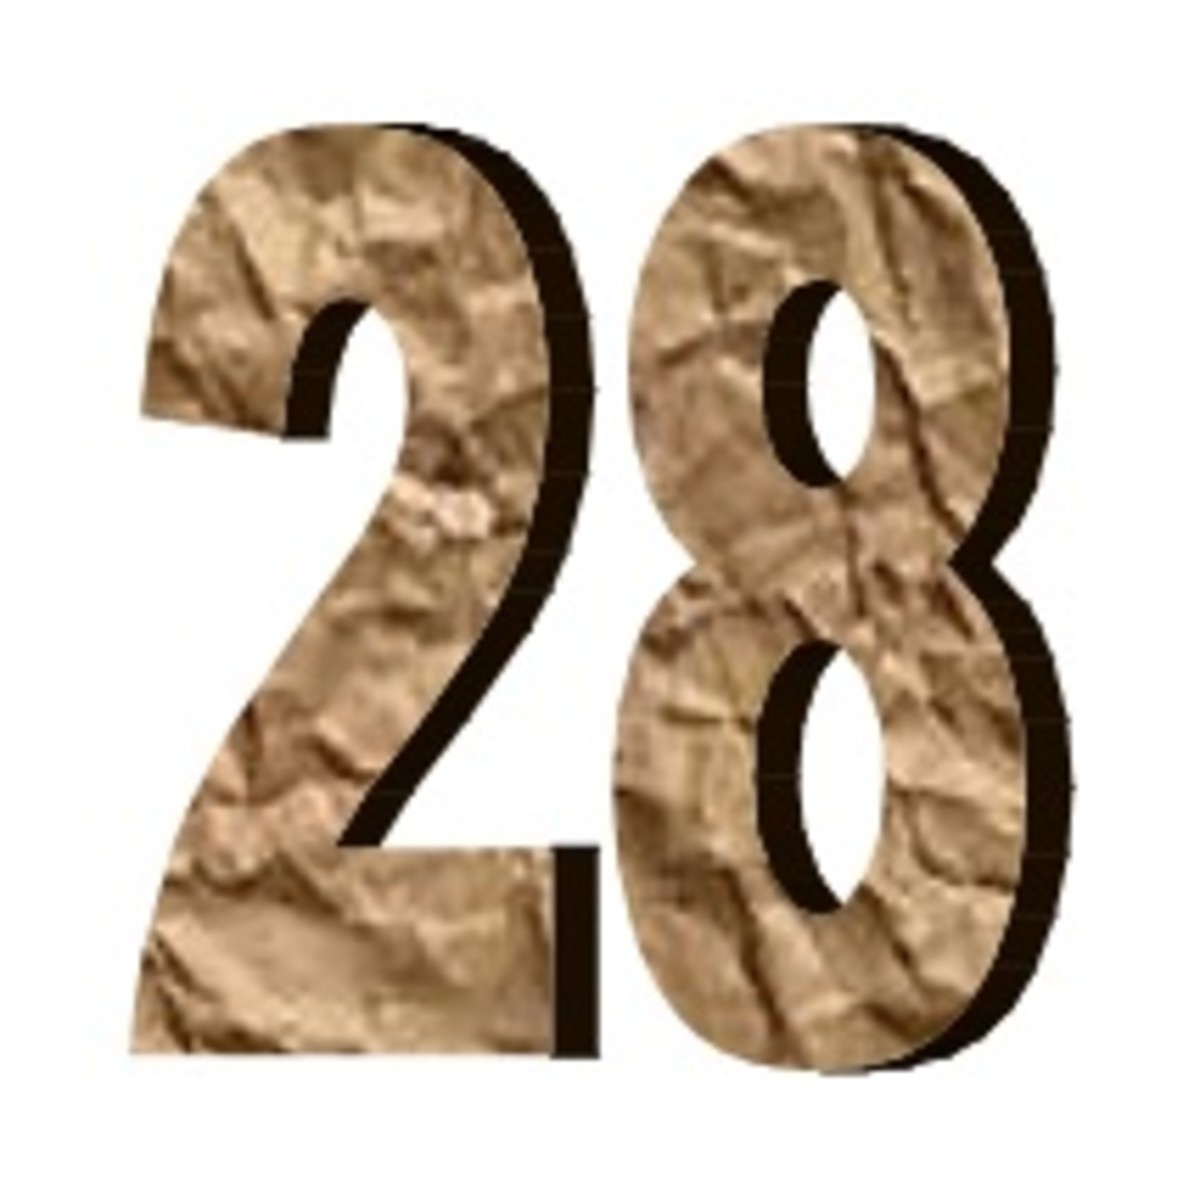 the-number-28-twenty-eight-interesting-and-fun-facts-about-28